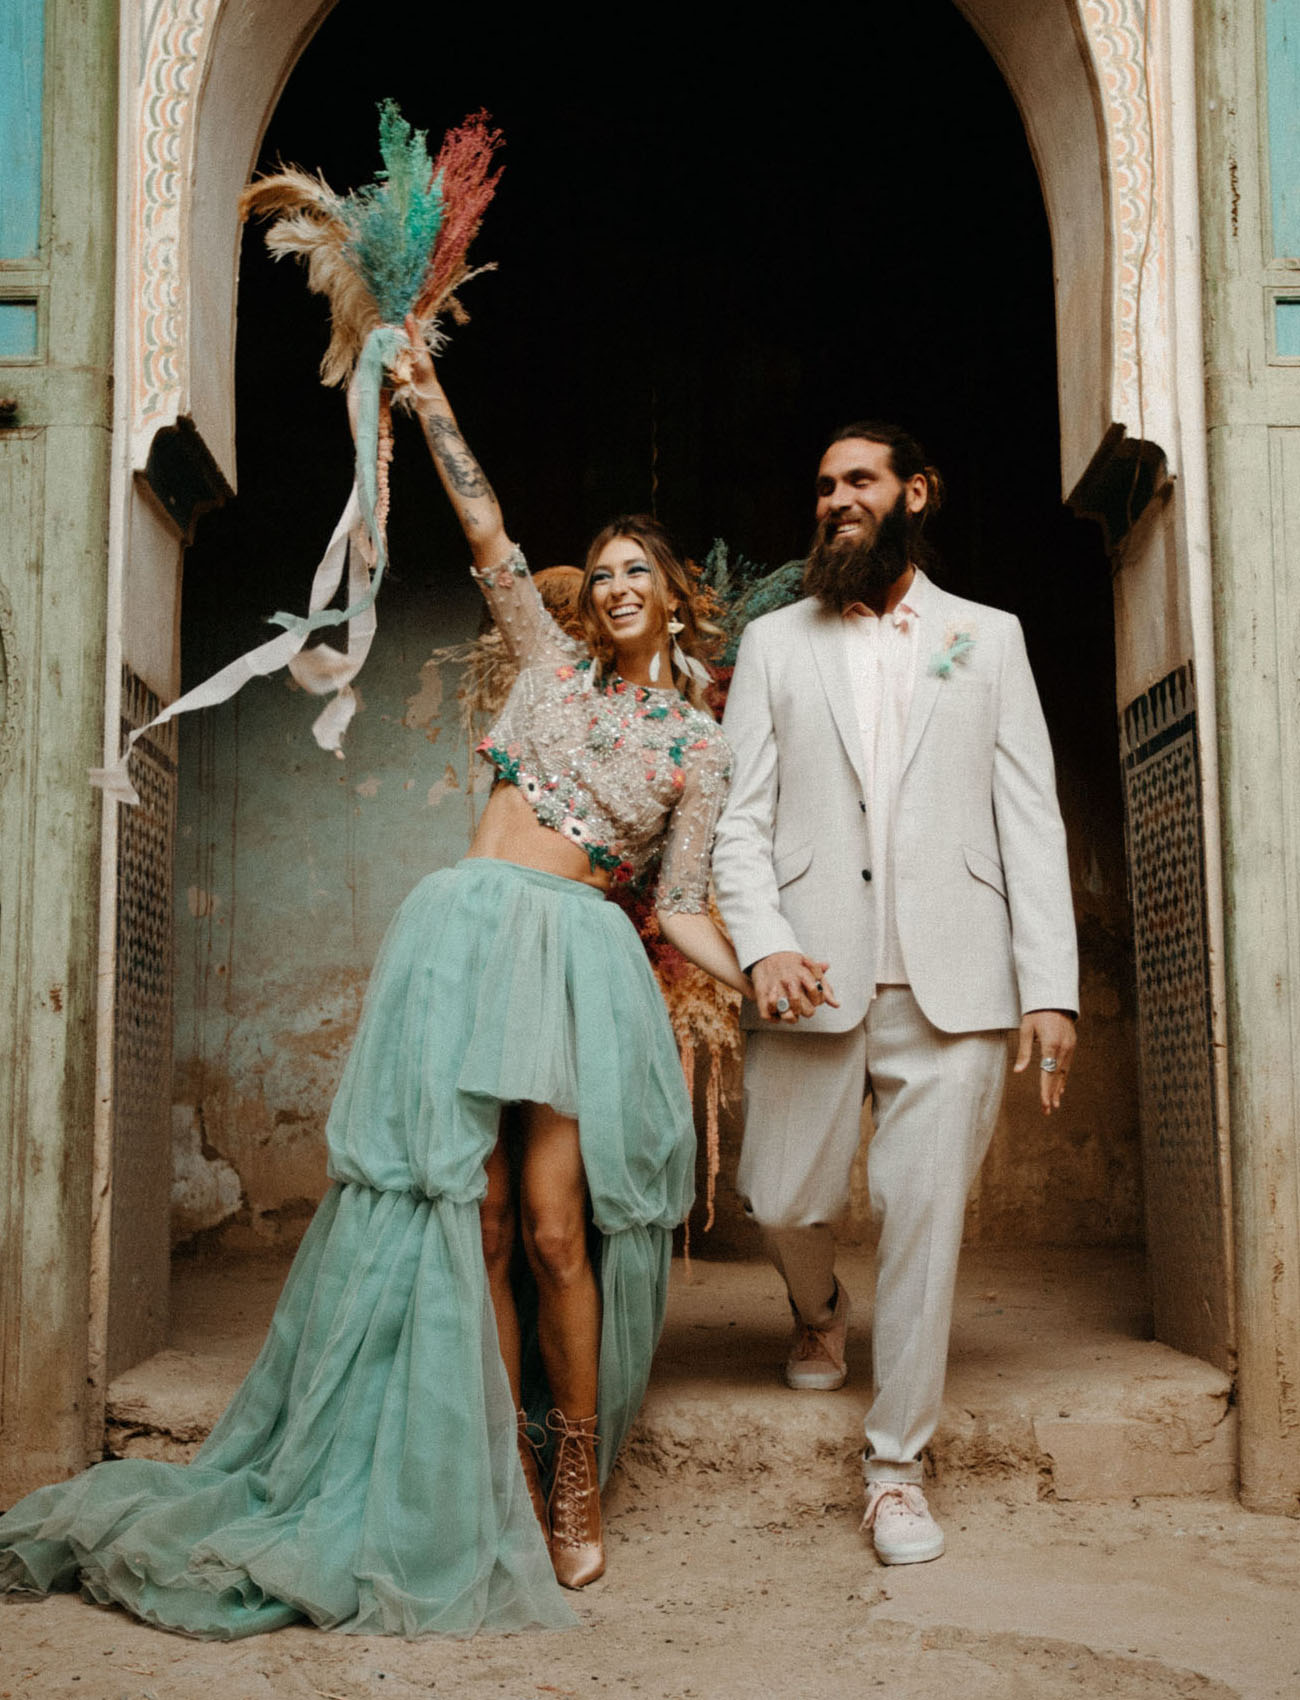 This gorgeous Moroccan wedding shoot was colorful, with a touch of bling and sparkle and absolutely non traditional for Morocco